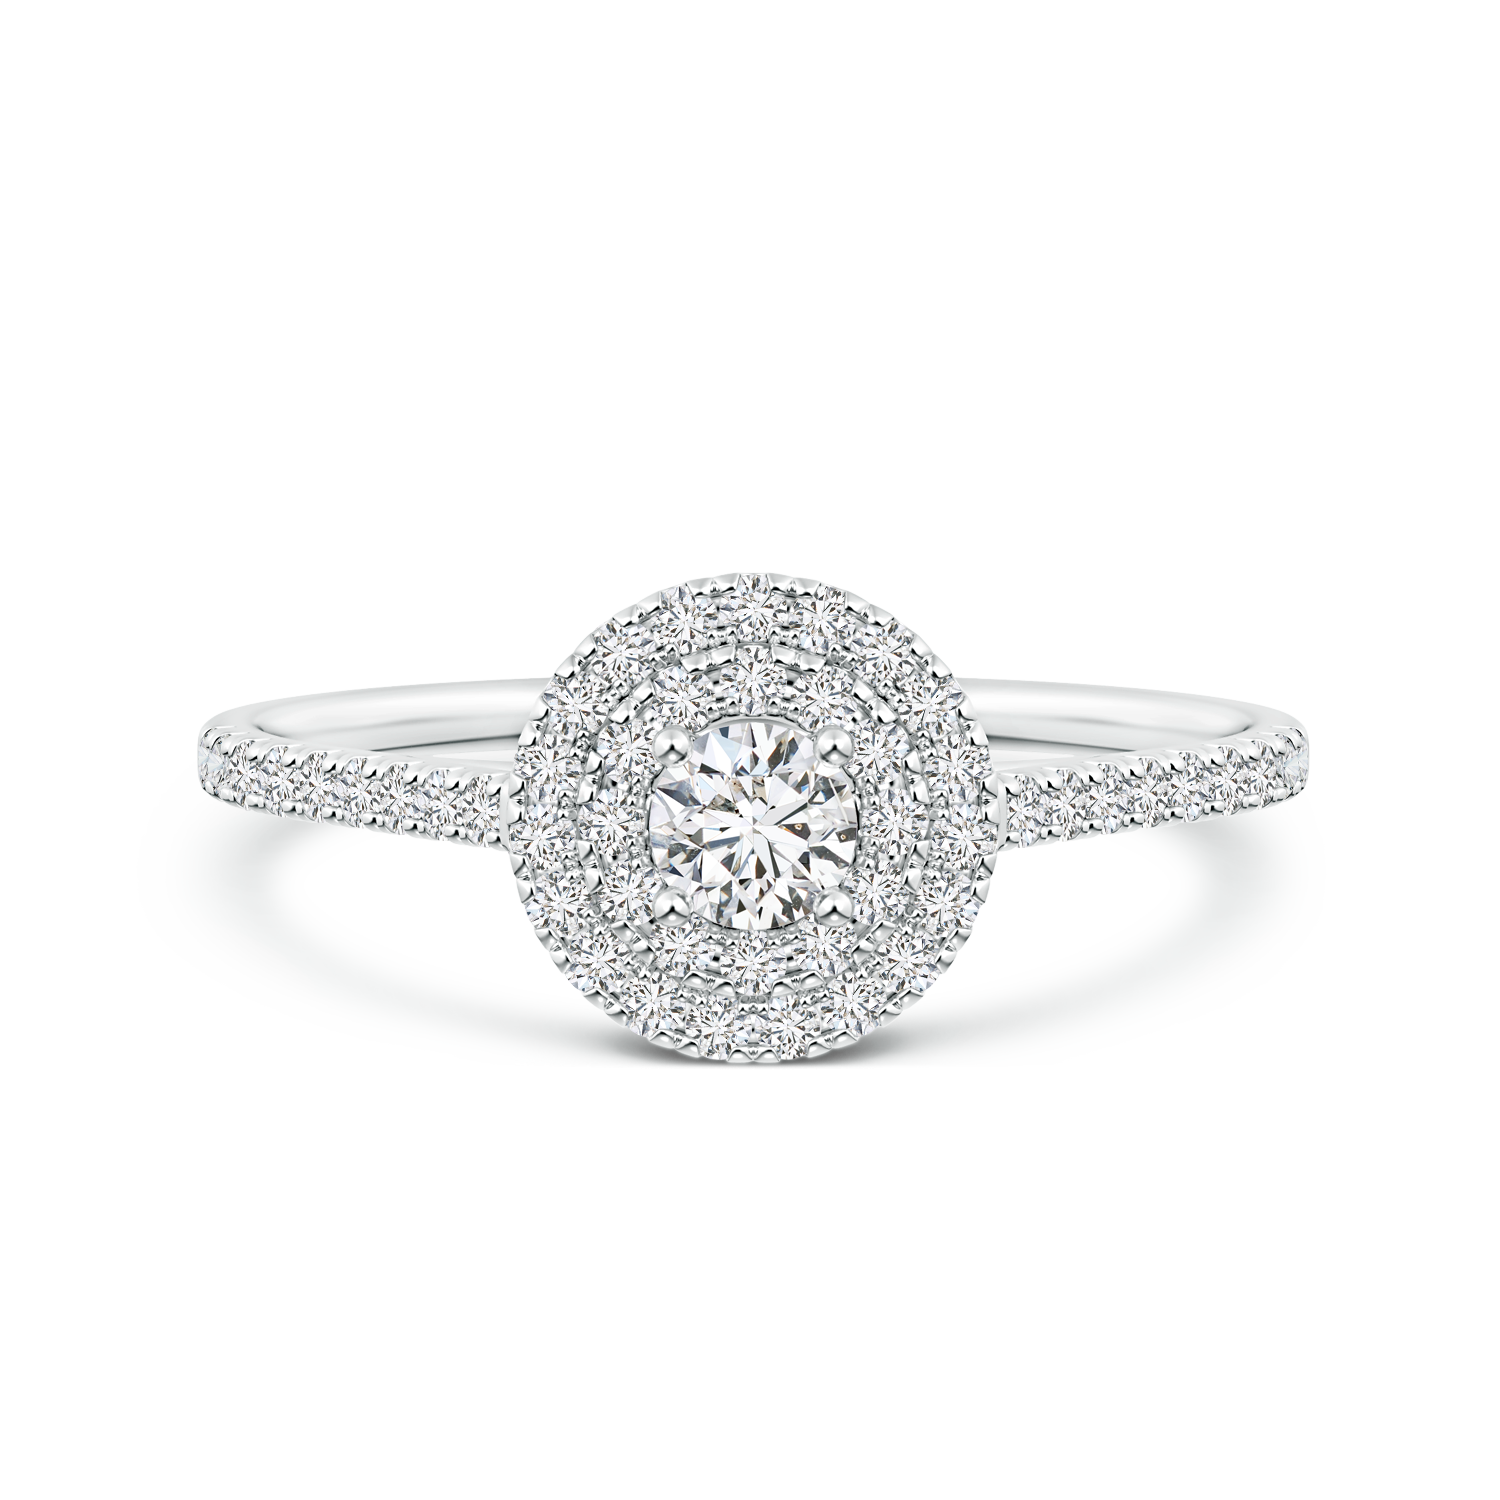 Round Lab Grown Diamond Double Halo Engagement Ring - Main Image